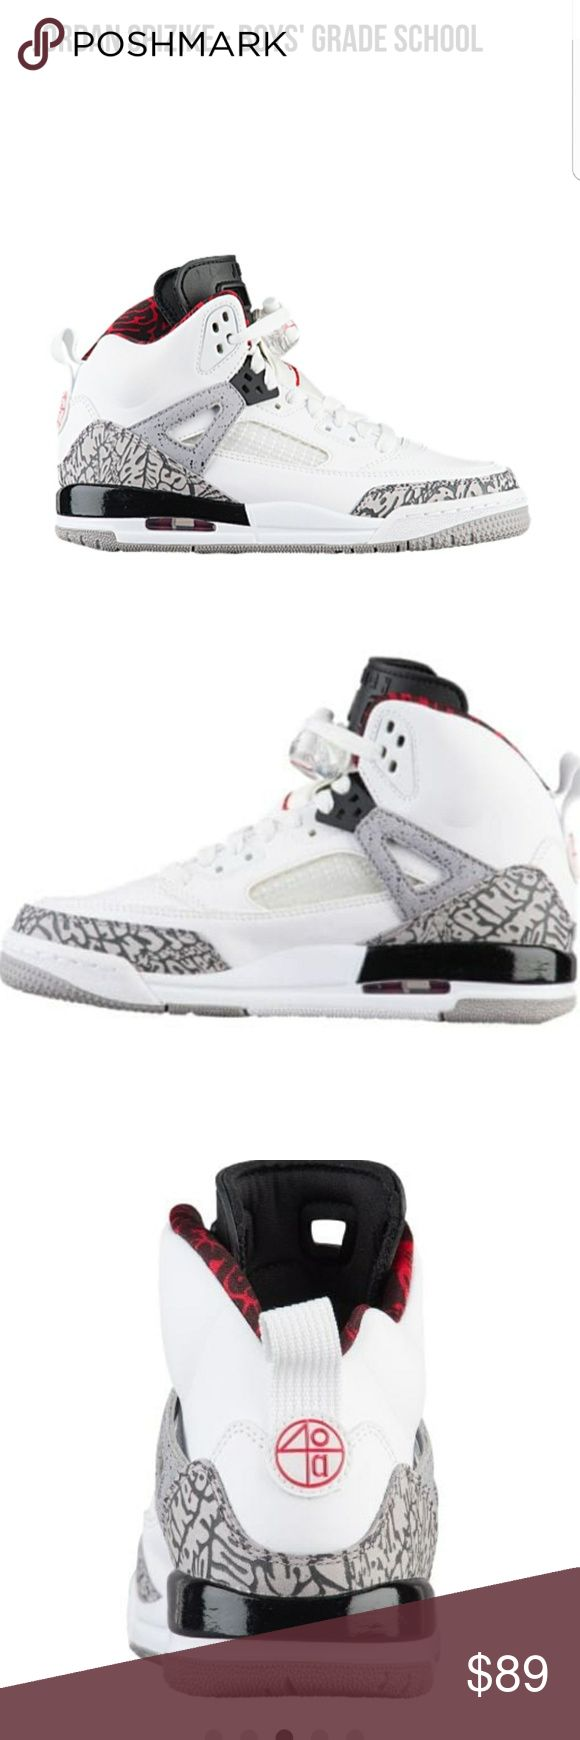 Jordan Spizike Boys Grade School sz 5 Red White New with Tags Jordan Shoes Athletic Shoes